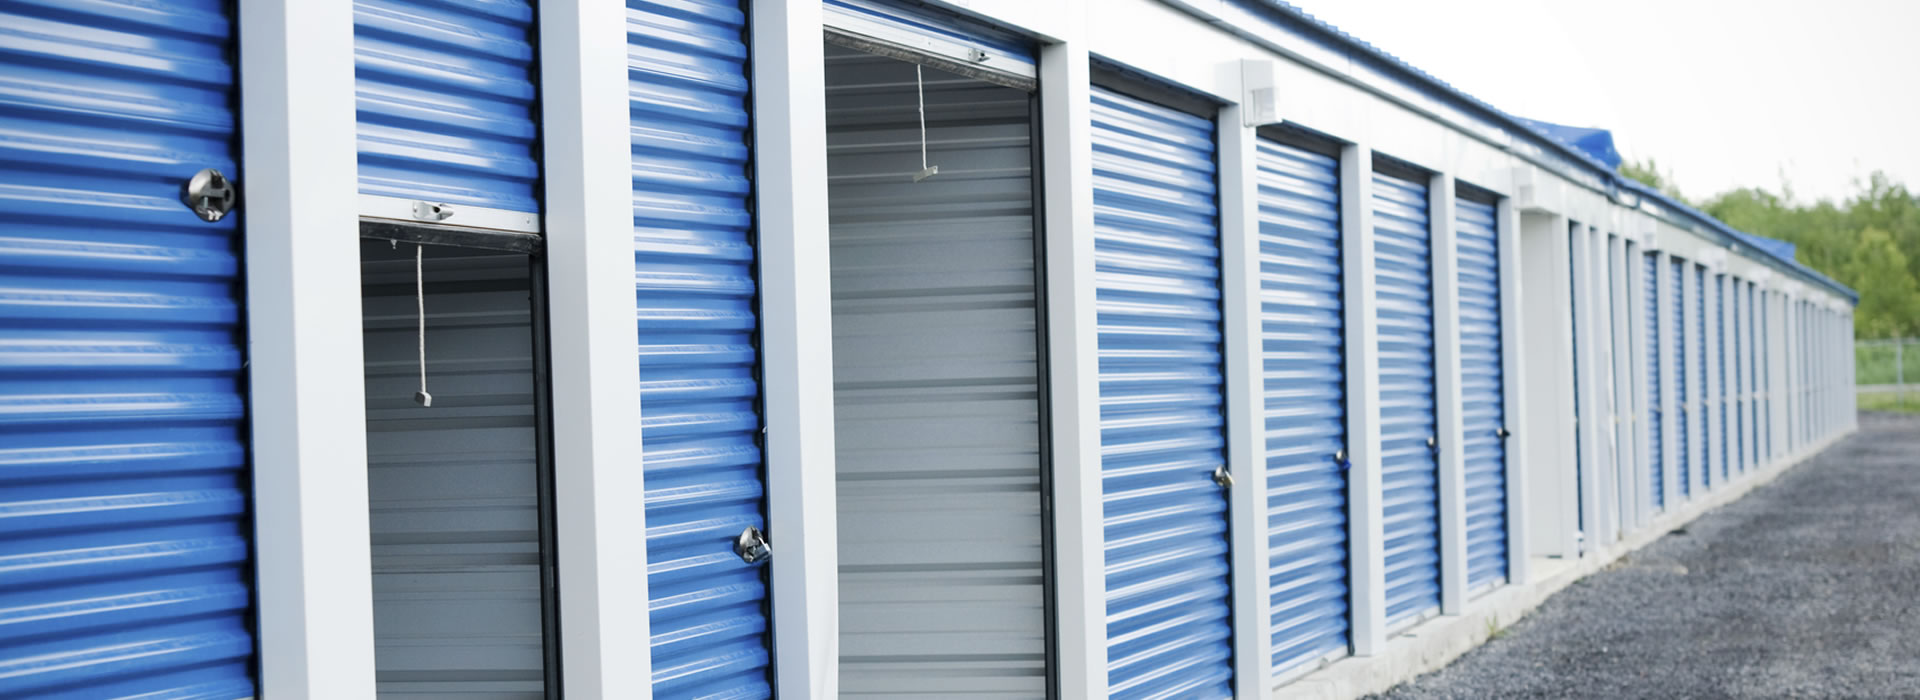 Just log on to //.safeselfstoragecalgary.ca and get associated with a top ranked safe self-storage facility which has been operational since a long ... & Calgary Storage Units Secure Self Storage Calgary Storage Space in ...